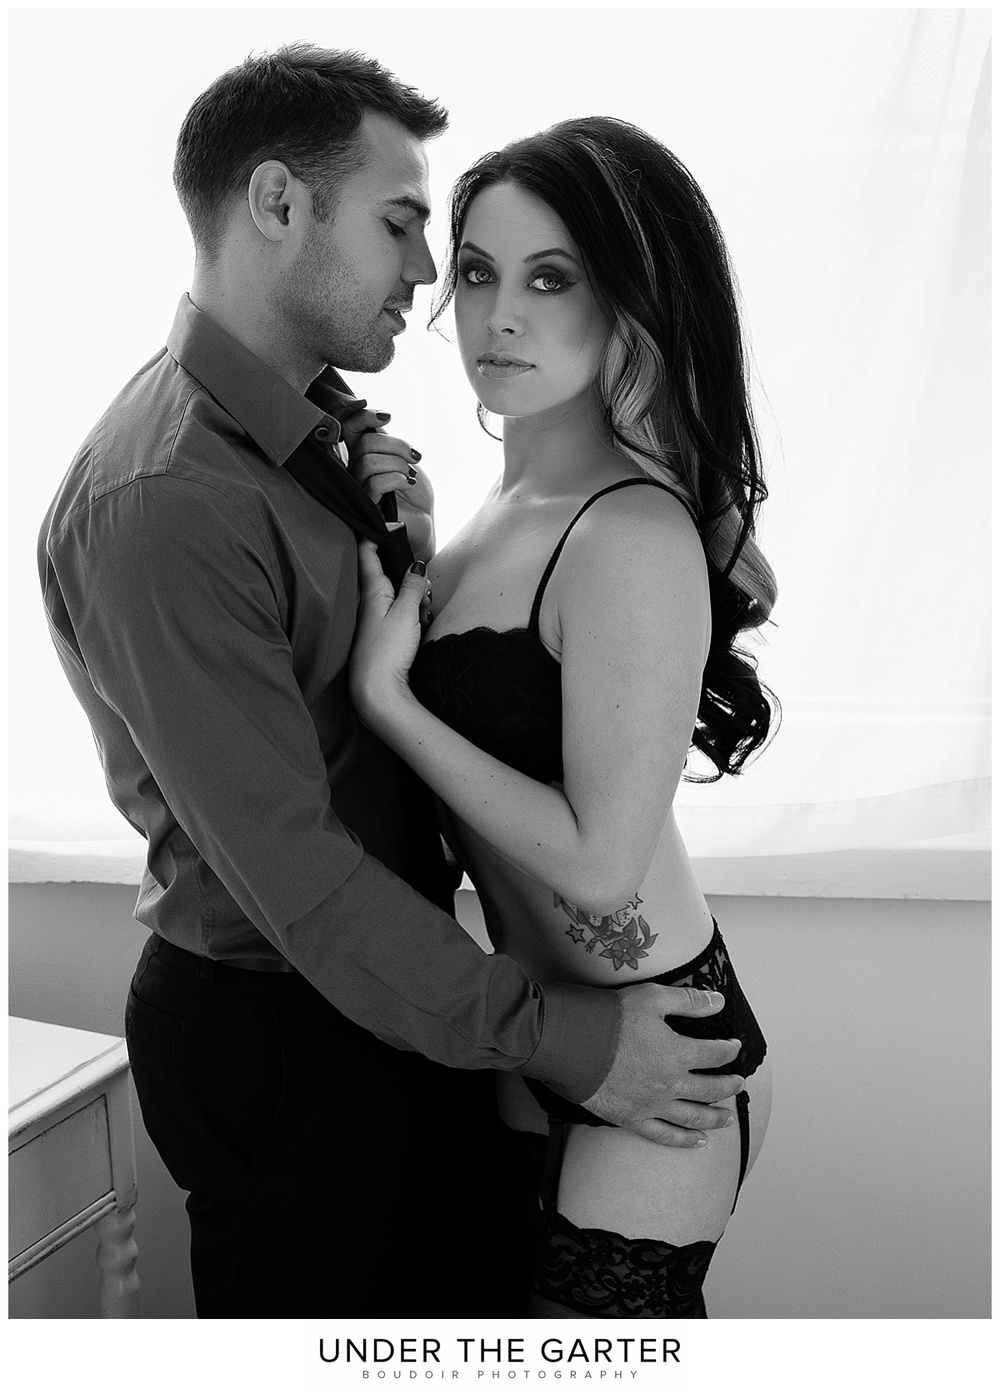 couples boudoir photography denver tie and lingerie.jpg